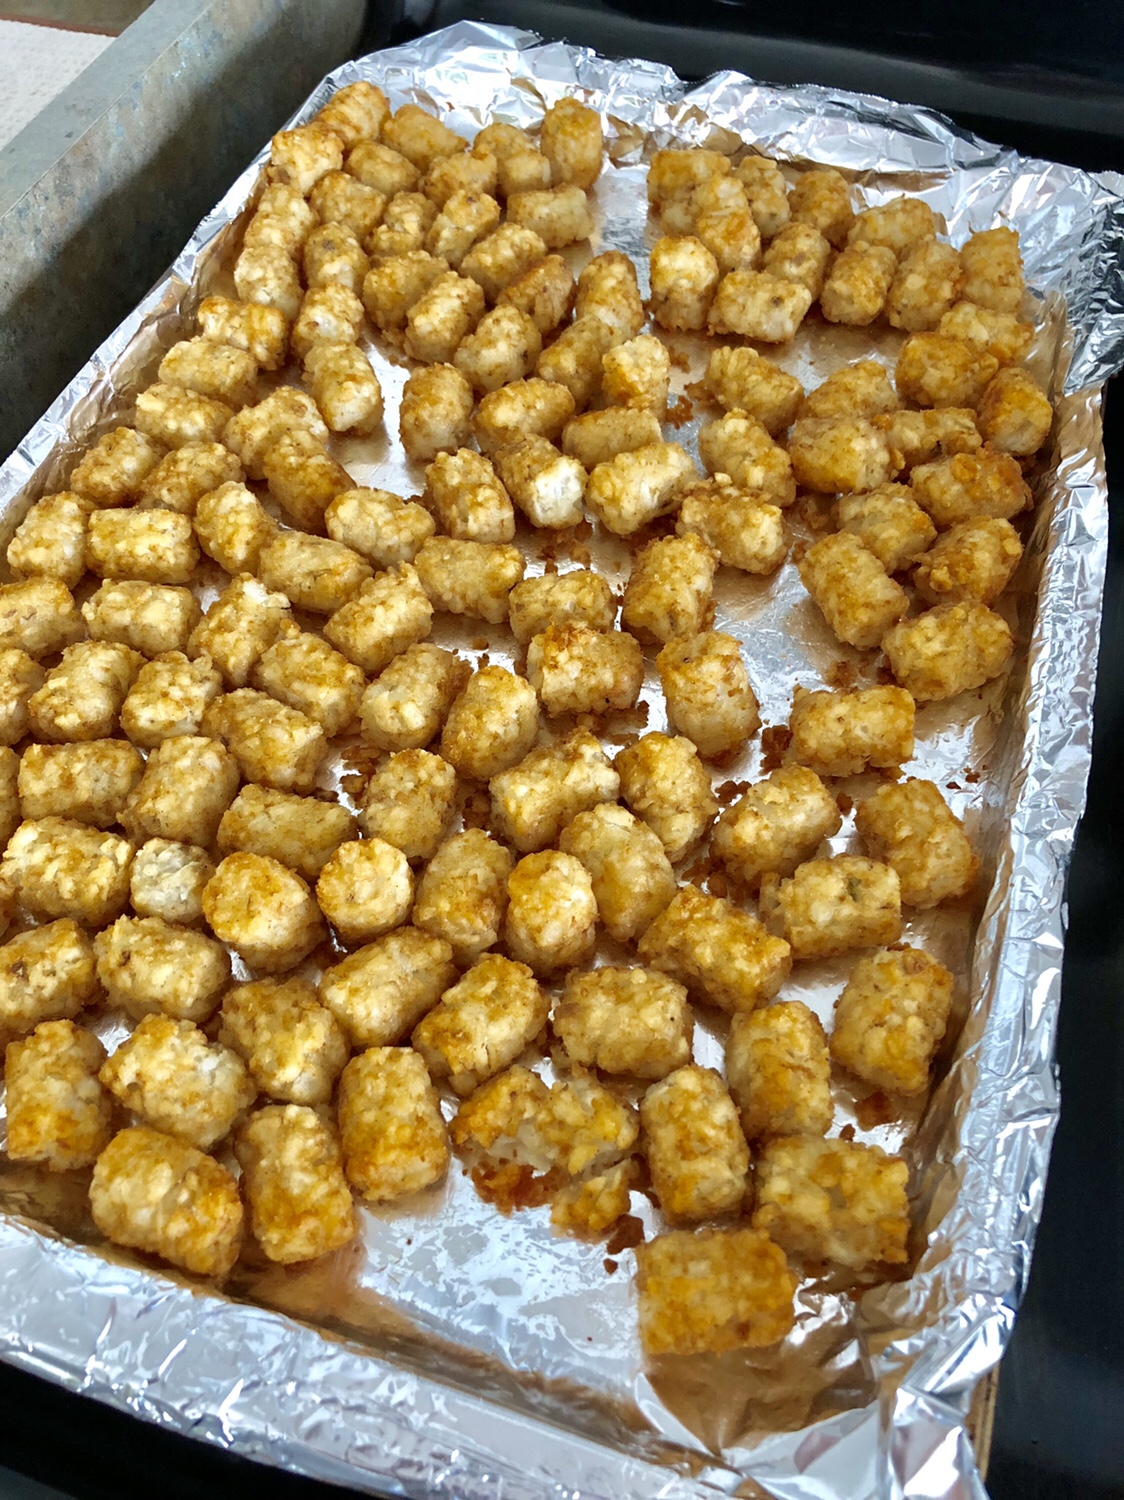 Cook tater tot according to package directions. #totchos #tatertotnachos #cincodemayo #tatertotrecipes #mexicanrecipes